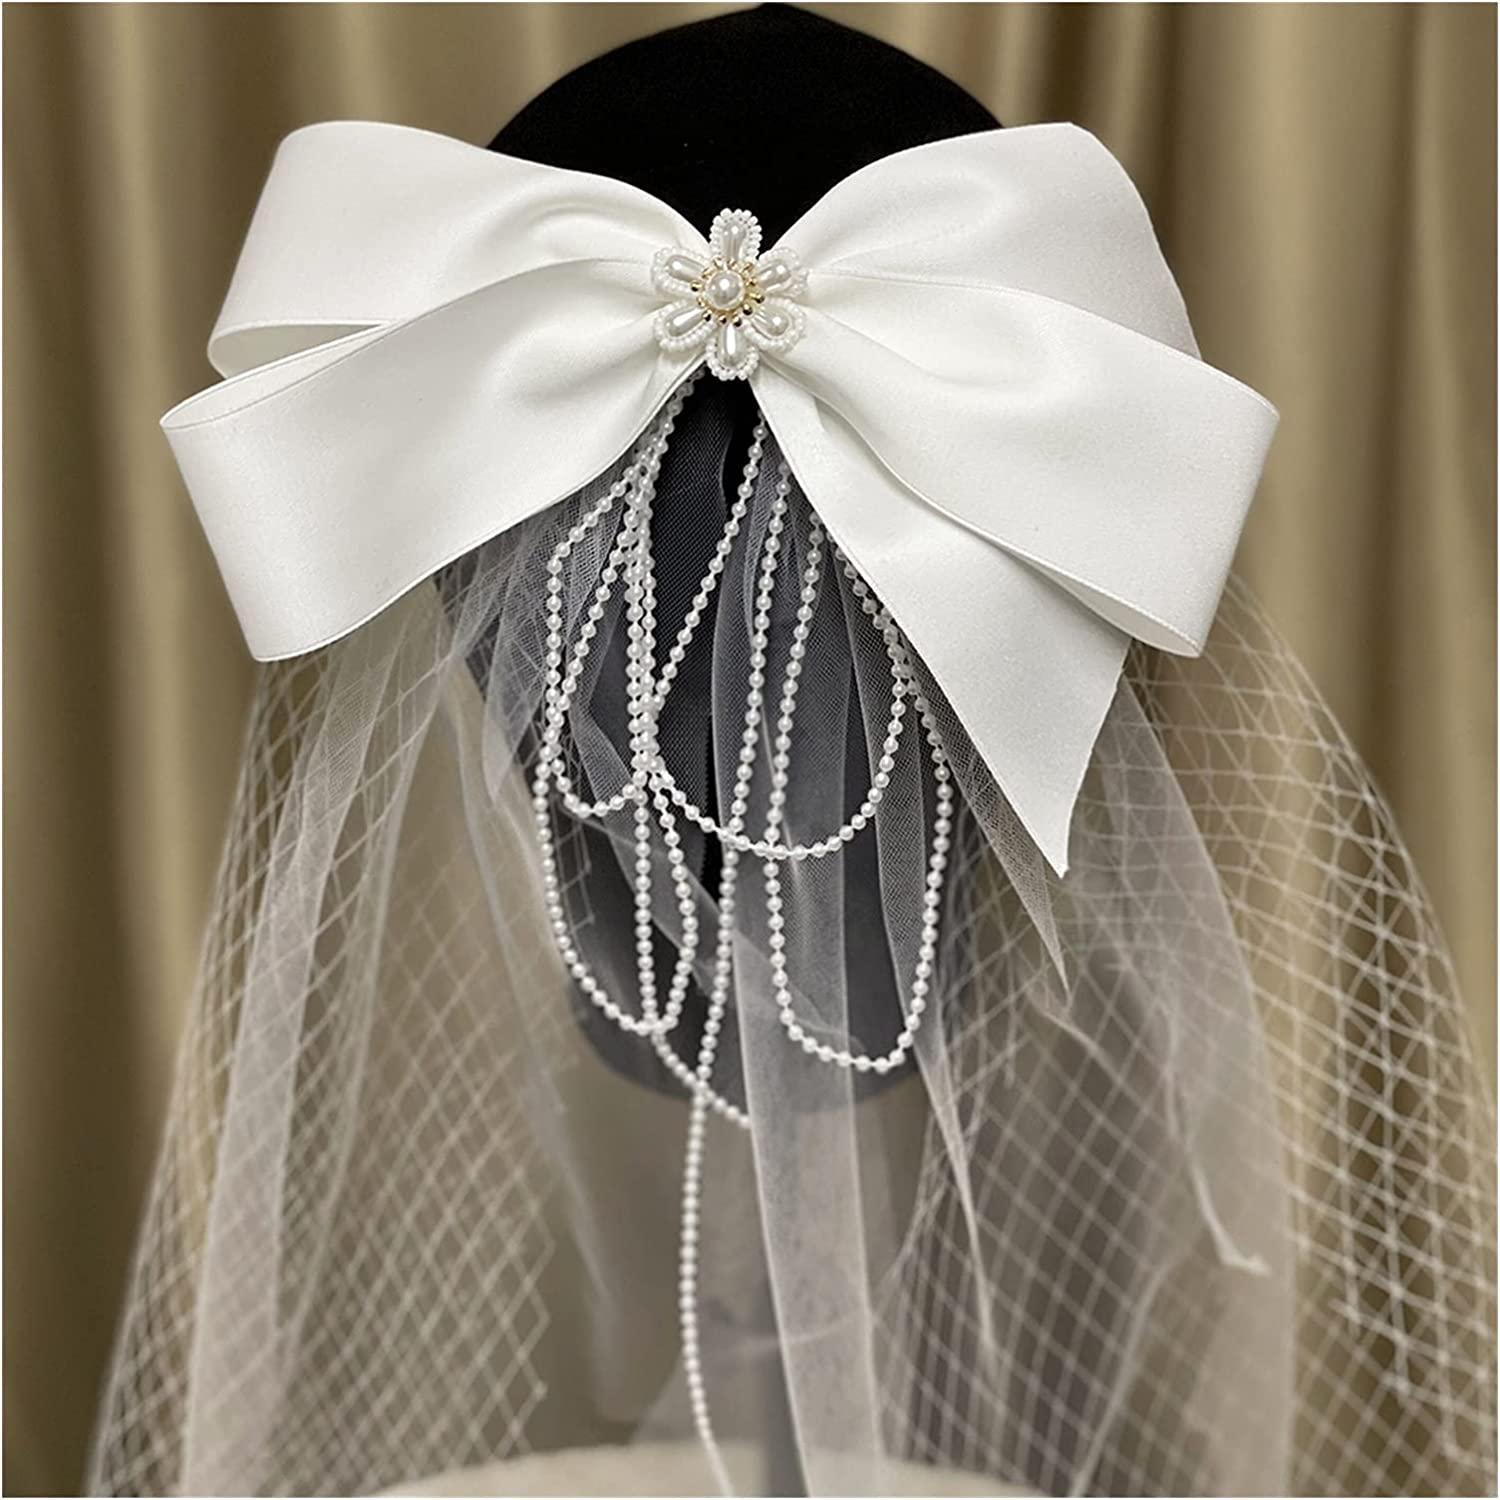 xunyang Ranking TOP8 Mori Style Retro Artistic Bow Veil Short He Flower Direct sale of manufacturer Pearl